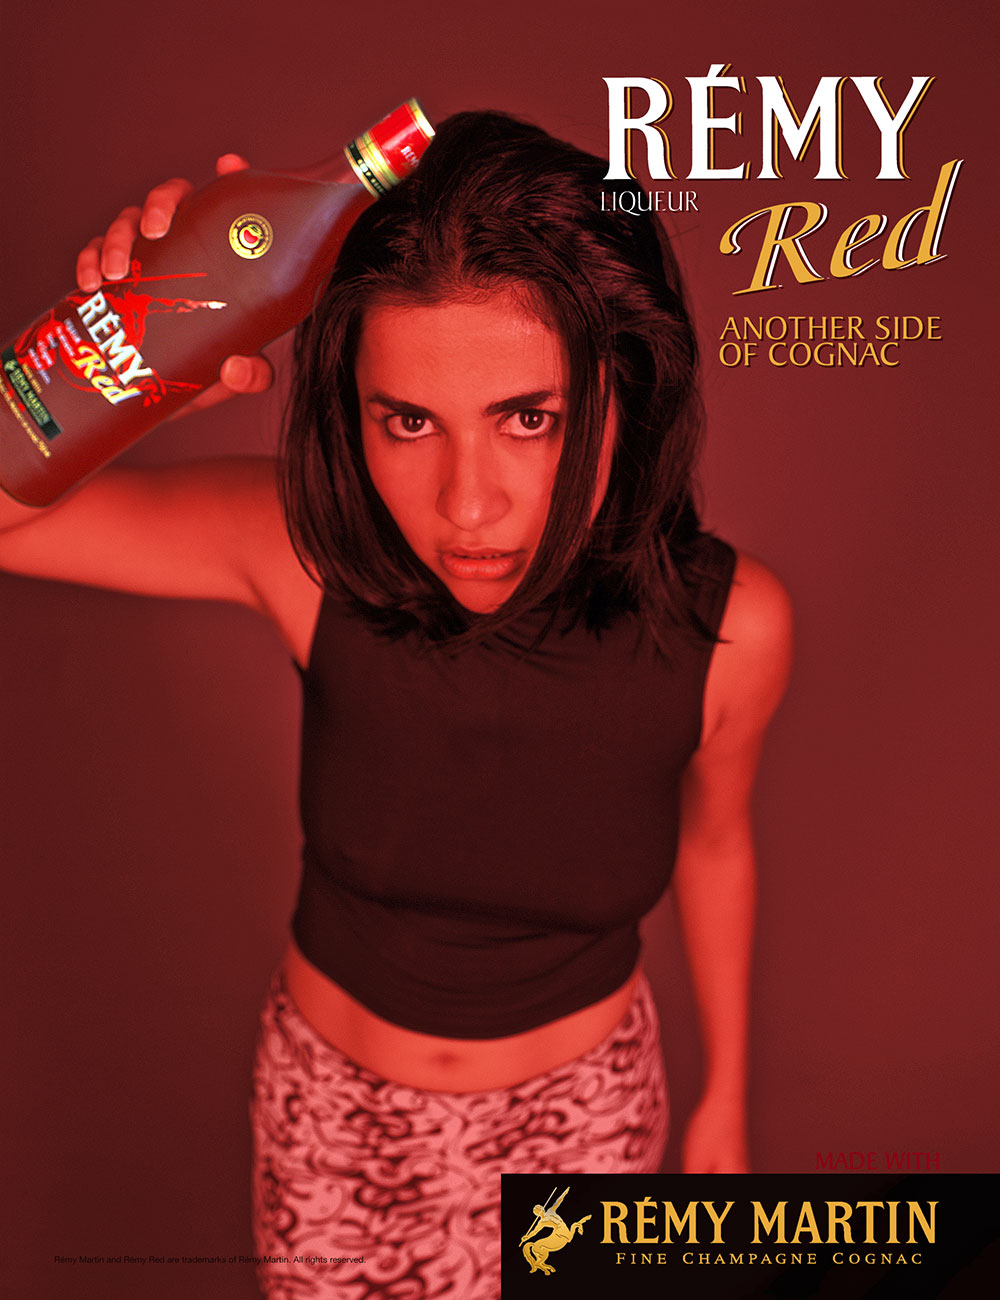 Remy Red Red Campaign Monica